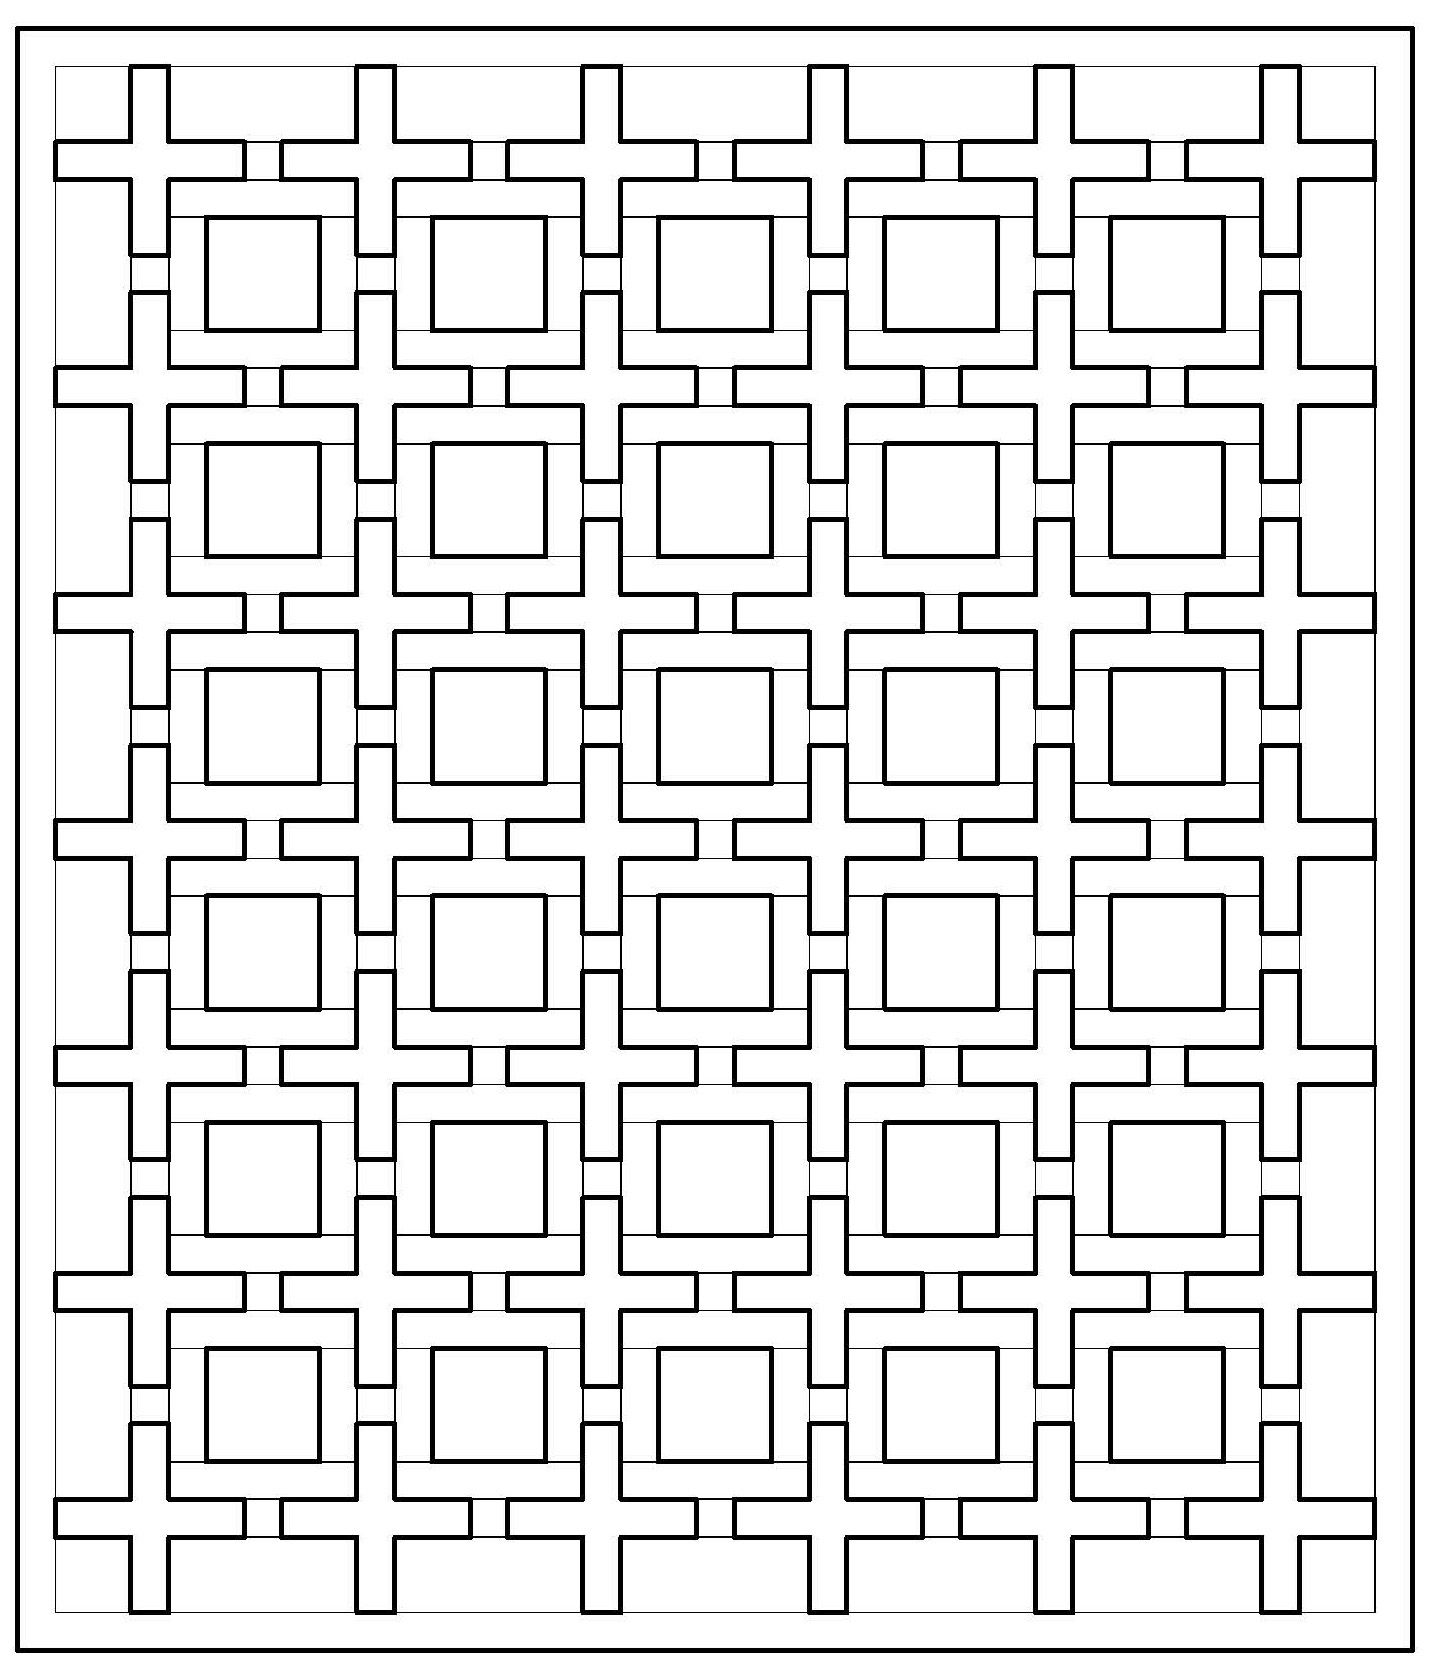 Design Patterns Coloring Pages Make Your Own Coloring Page